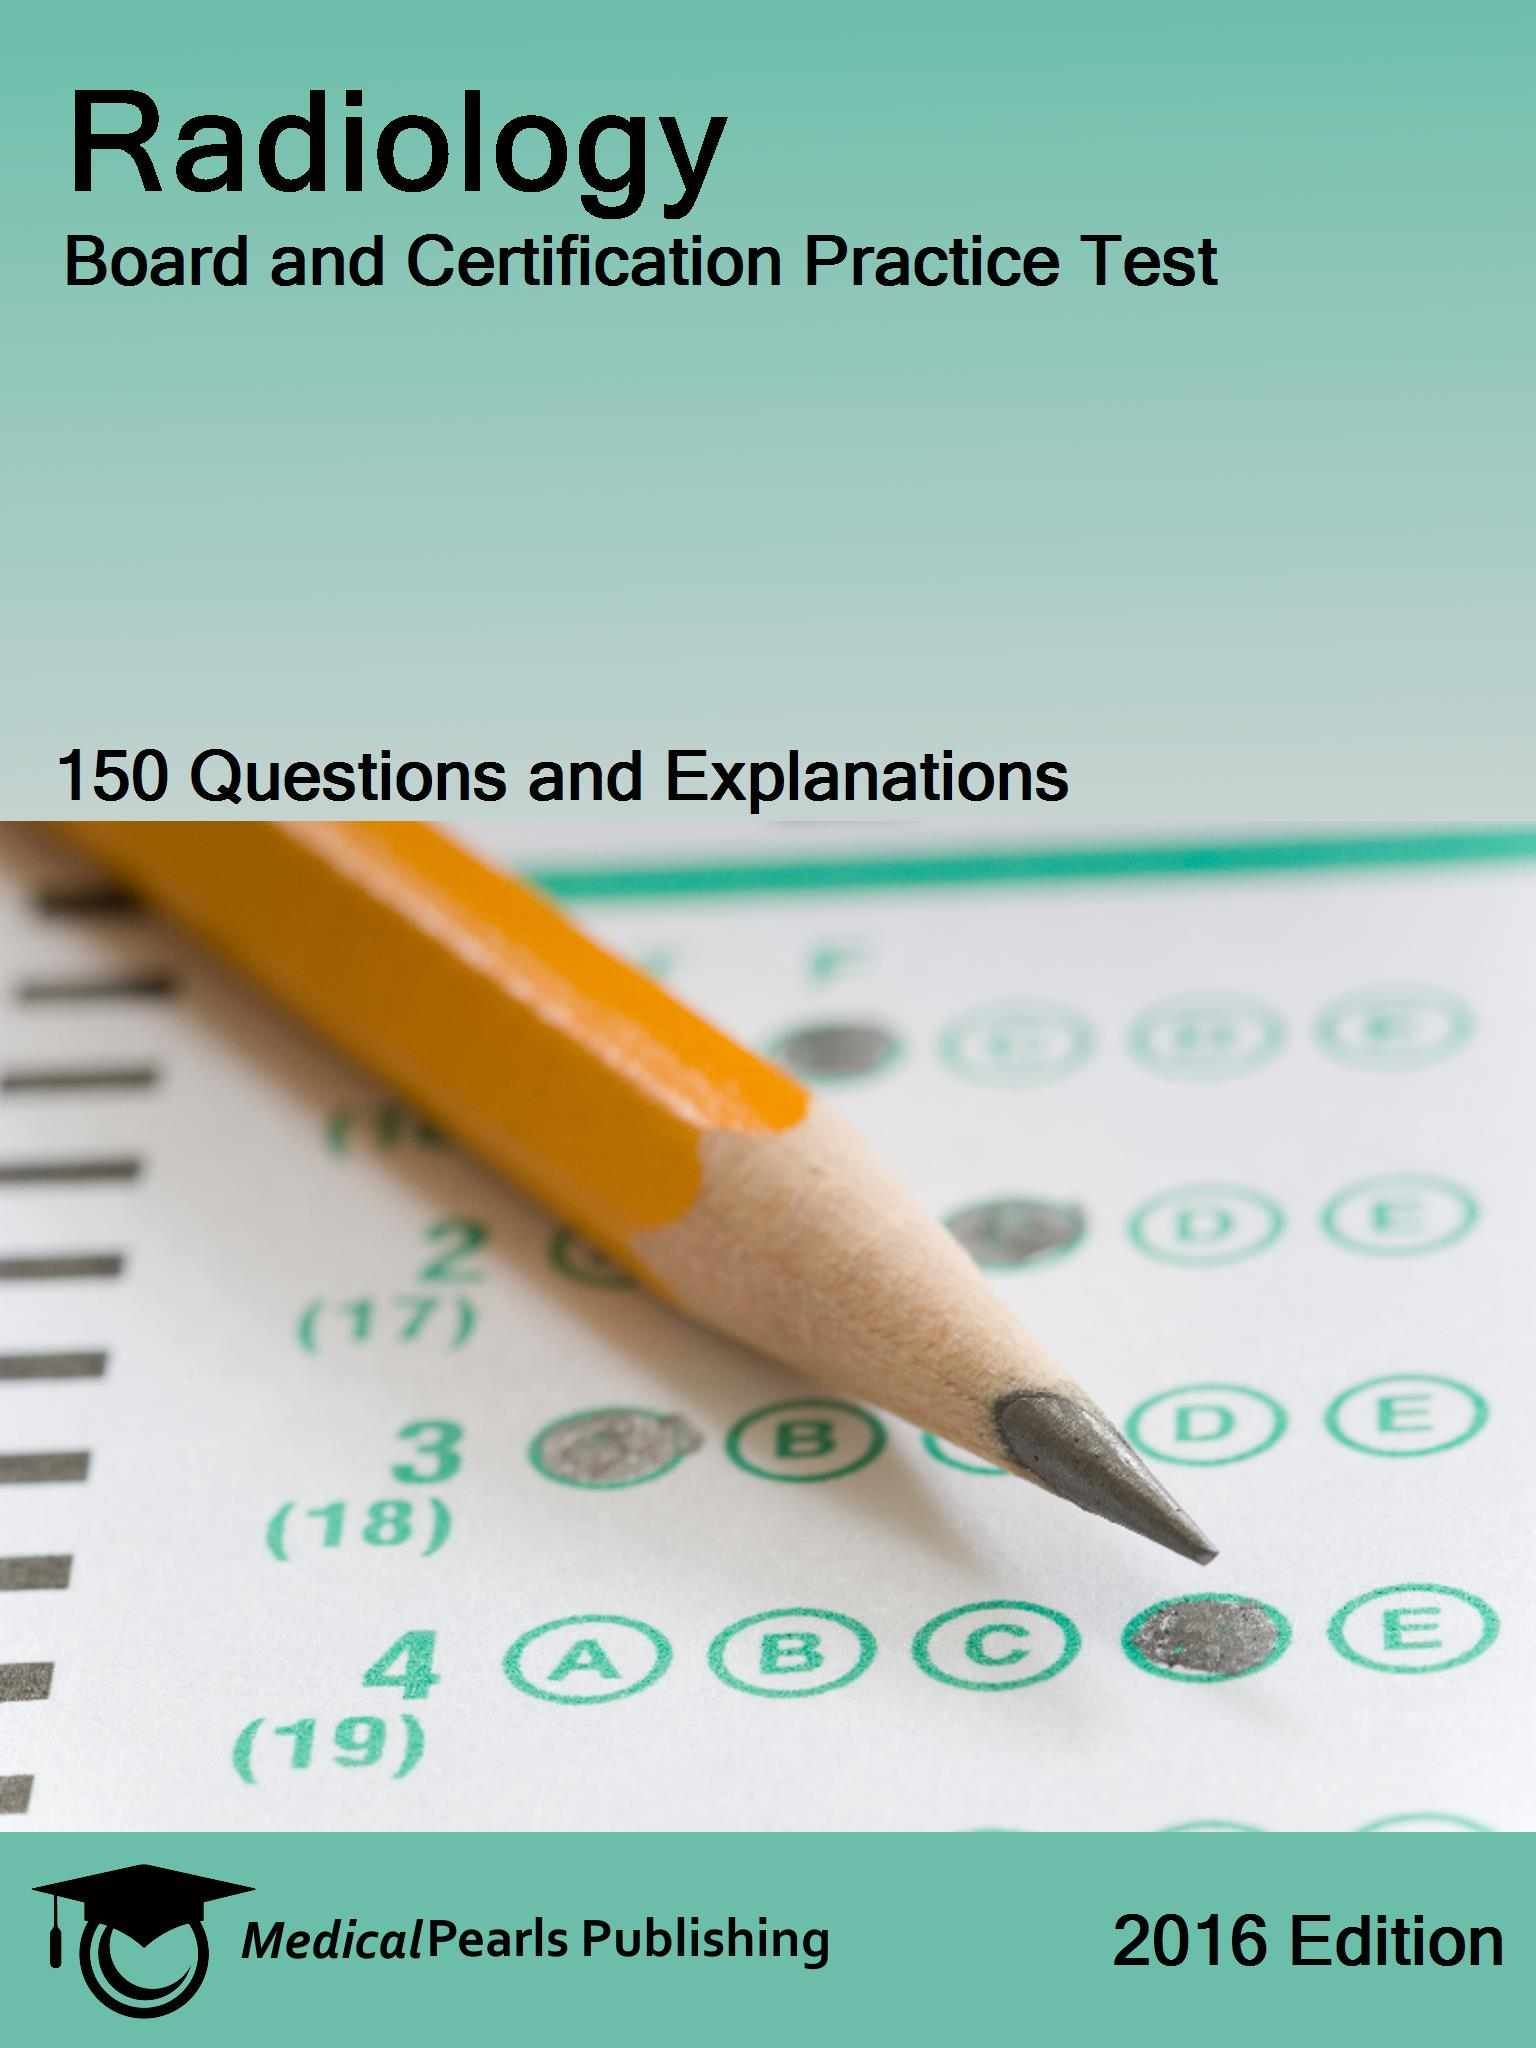 Radiology board and certification practice test kindle edition nurse inpatient obstetric rnc board and certification practice test medicalpearls publishing provides a multiple choice question practice test with 1betcityfo Choice Image